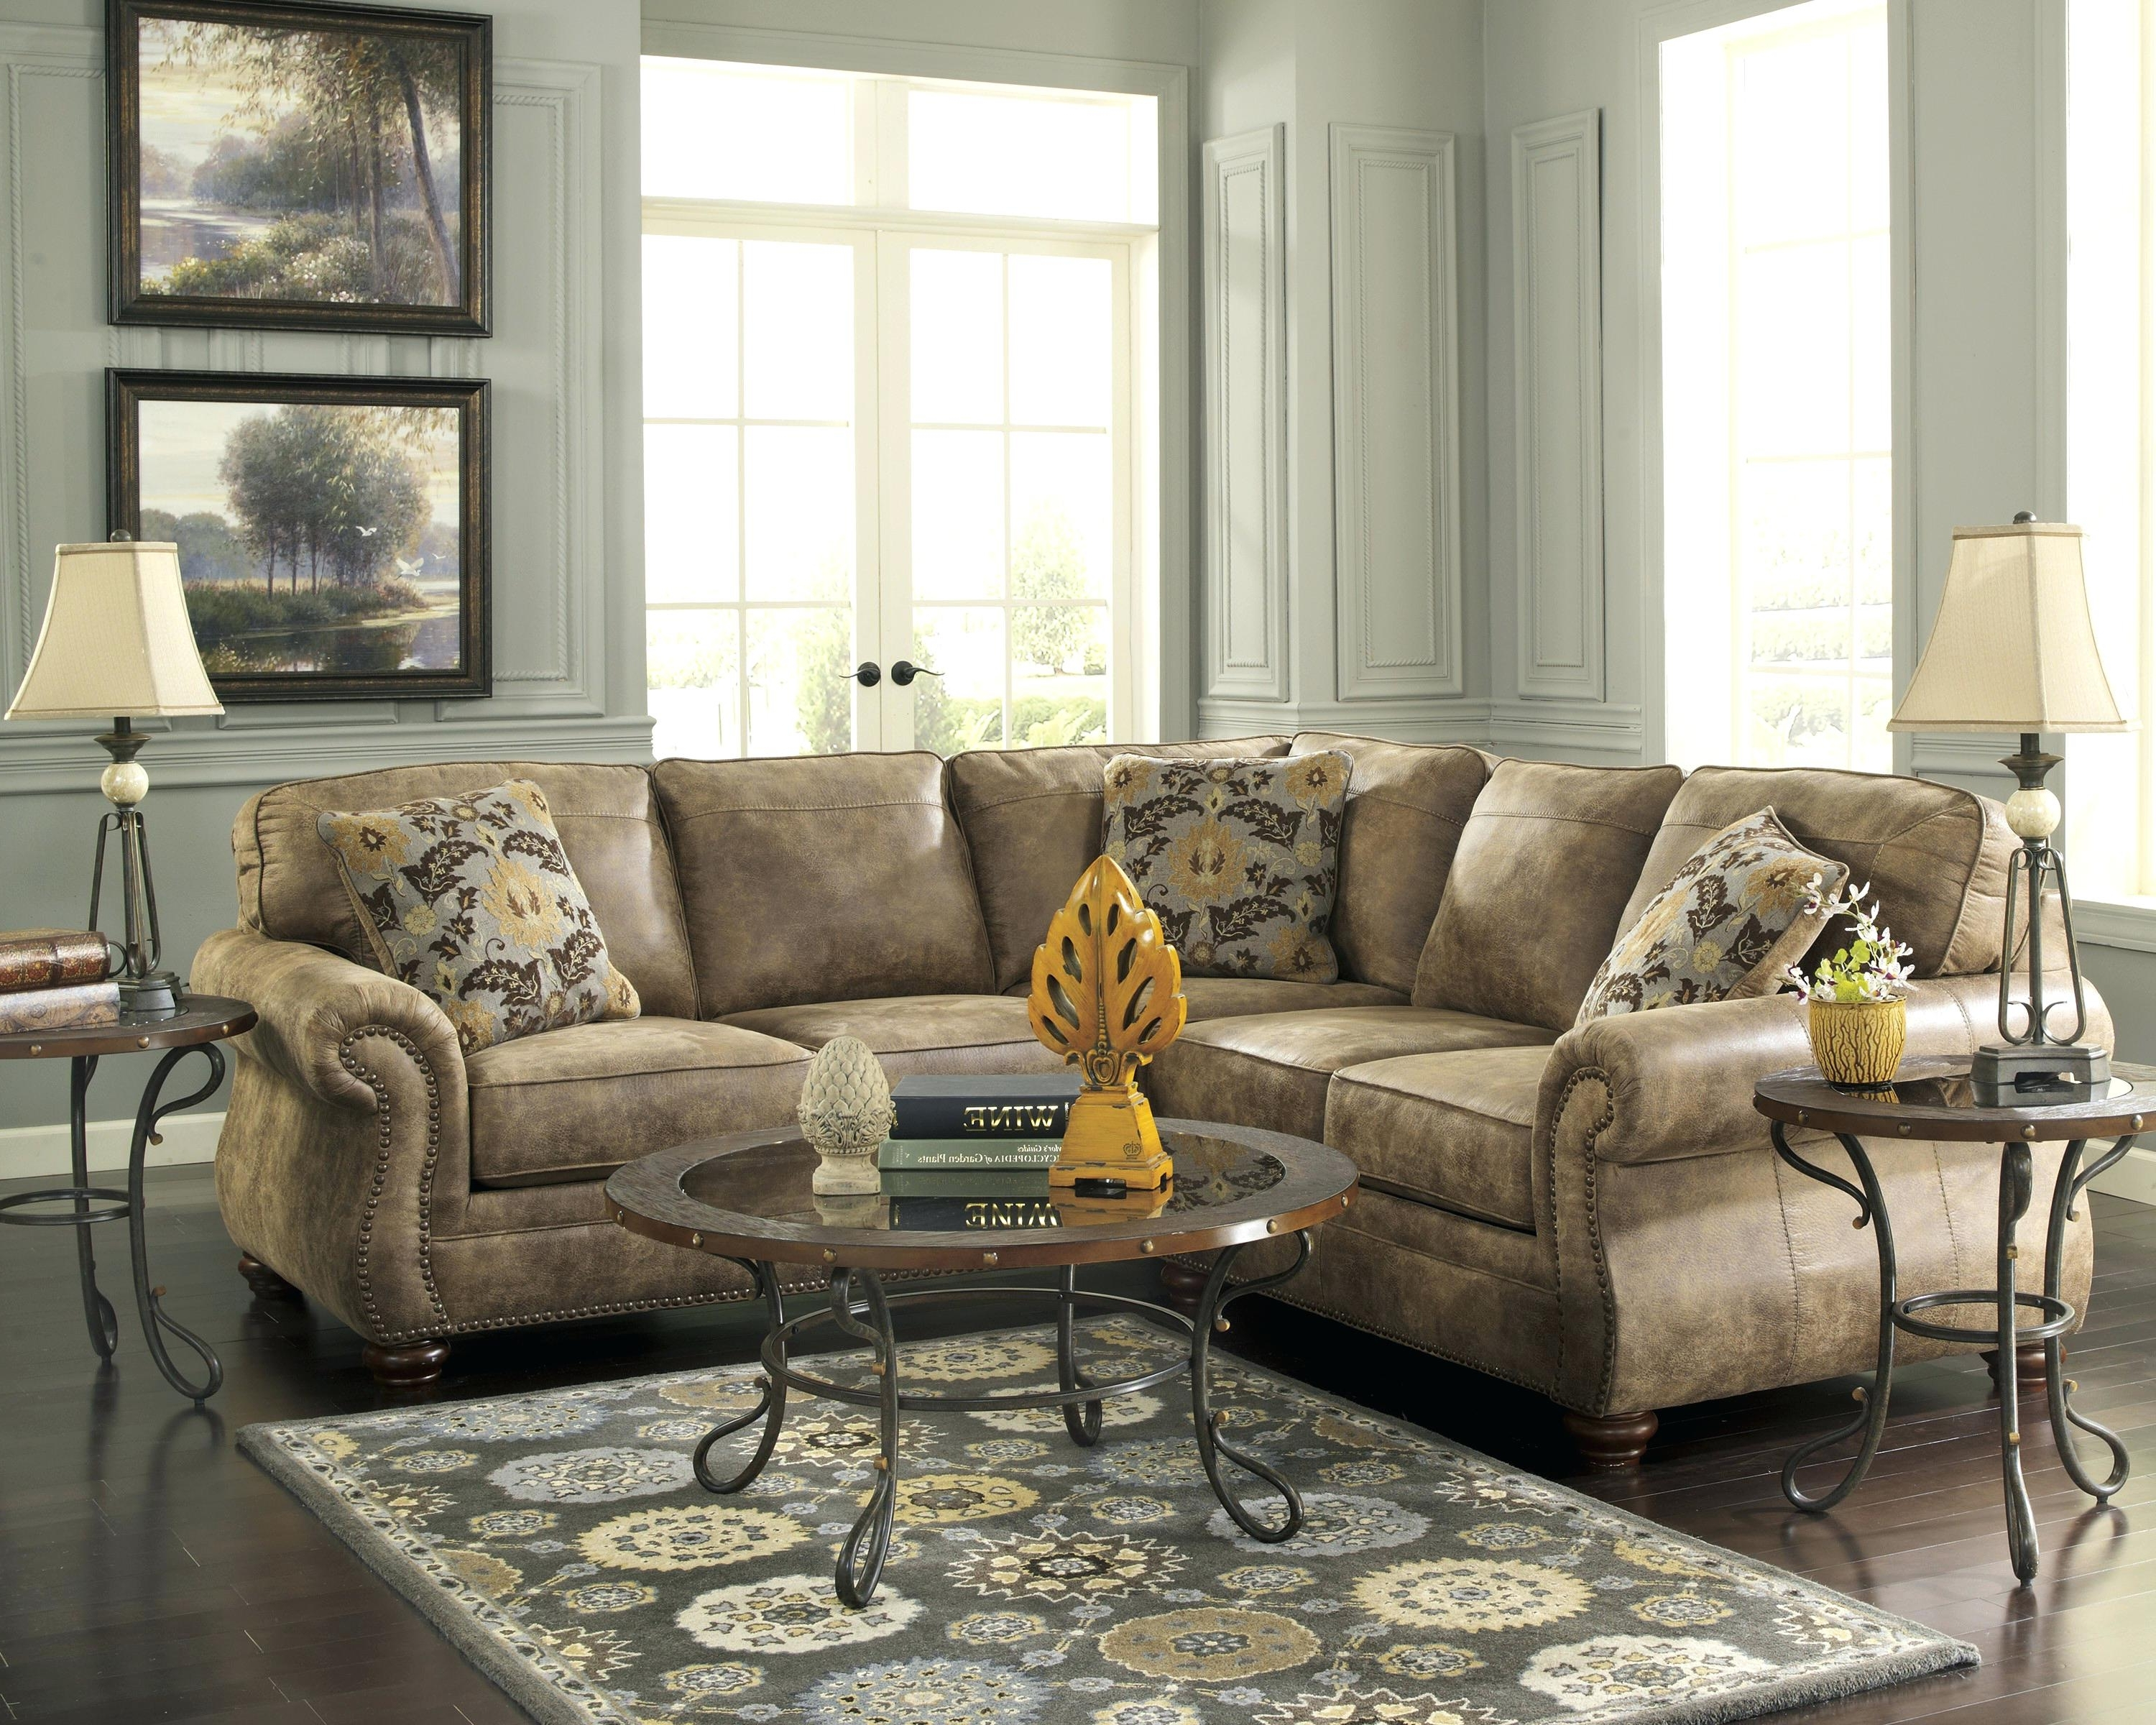 Az Furniture Stores Store Going Out Of Business Mesa Tucson Within 2019 Gilbert Az Sectional Sofas (View 3 of 20)